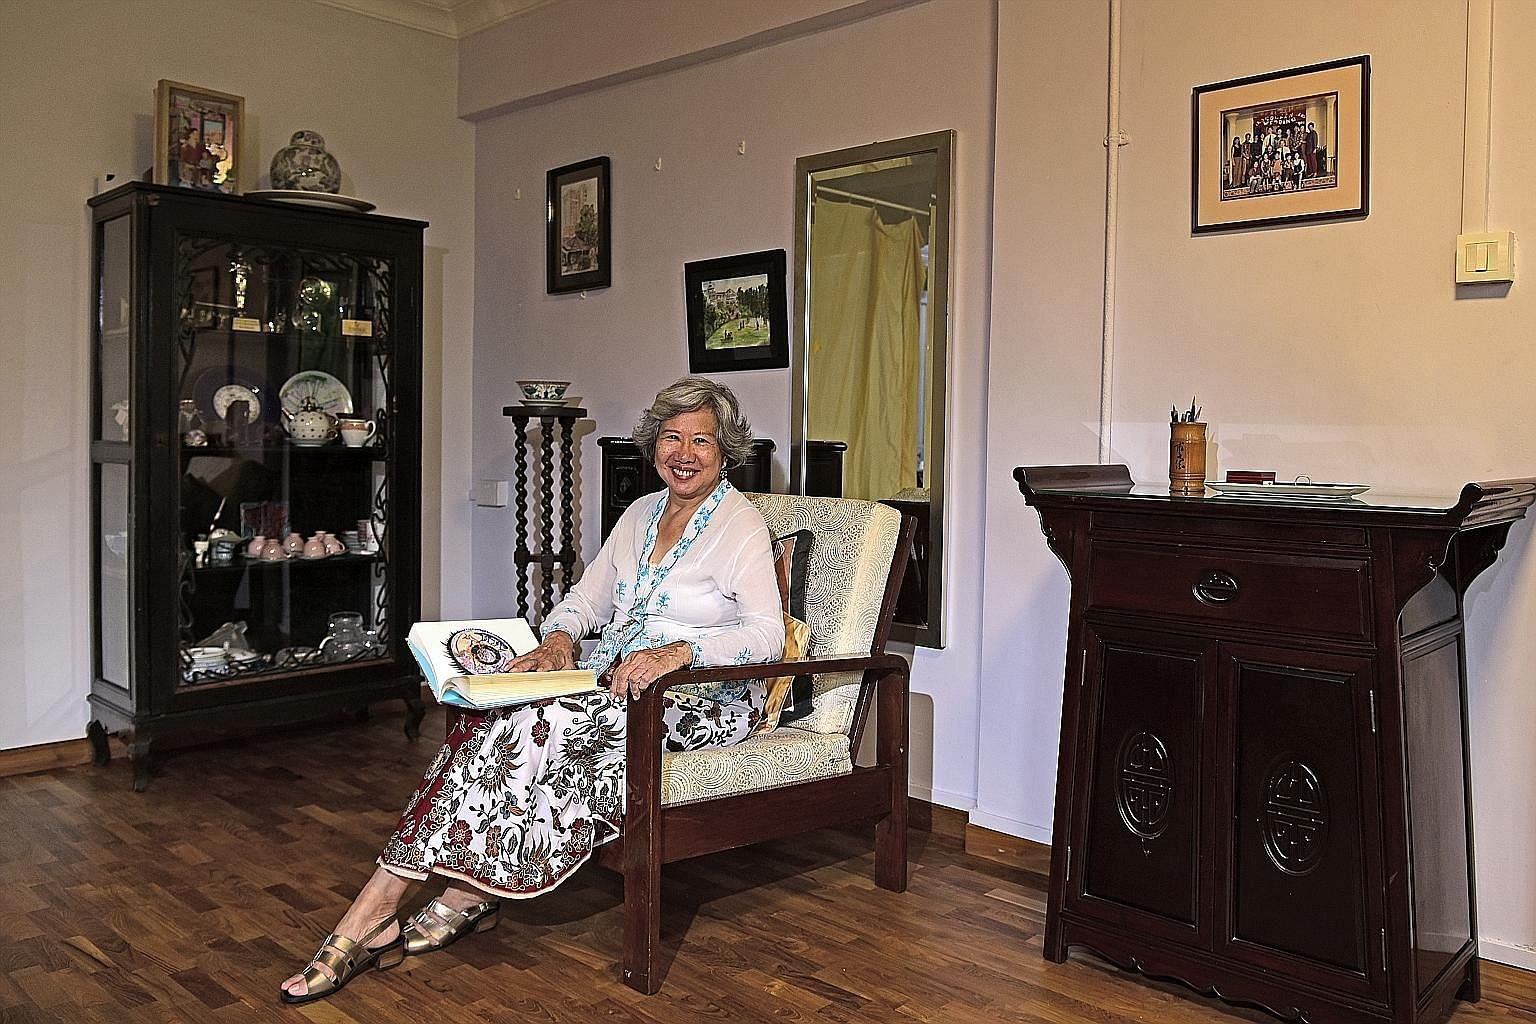 Author Stella Kon, seen here in her home, will read an excerpt of her famous monodrama, Emily Of Emerald Hill, at the festival.